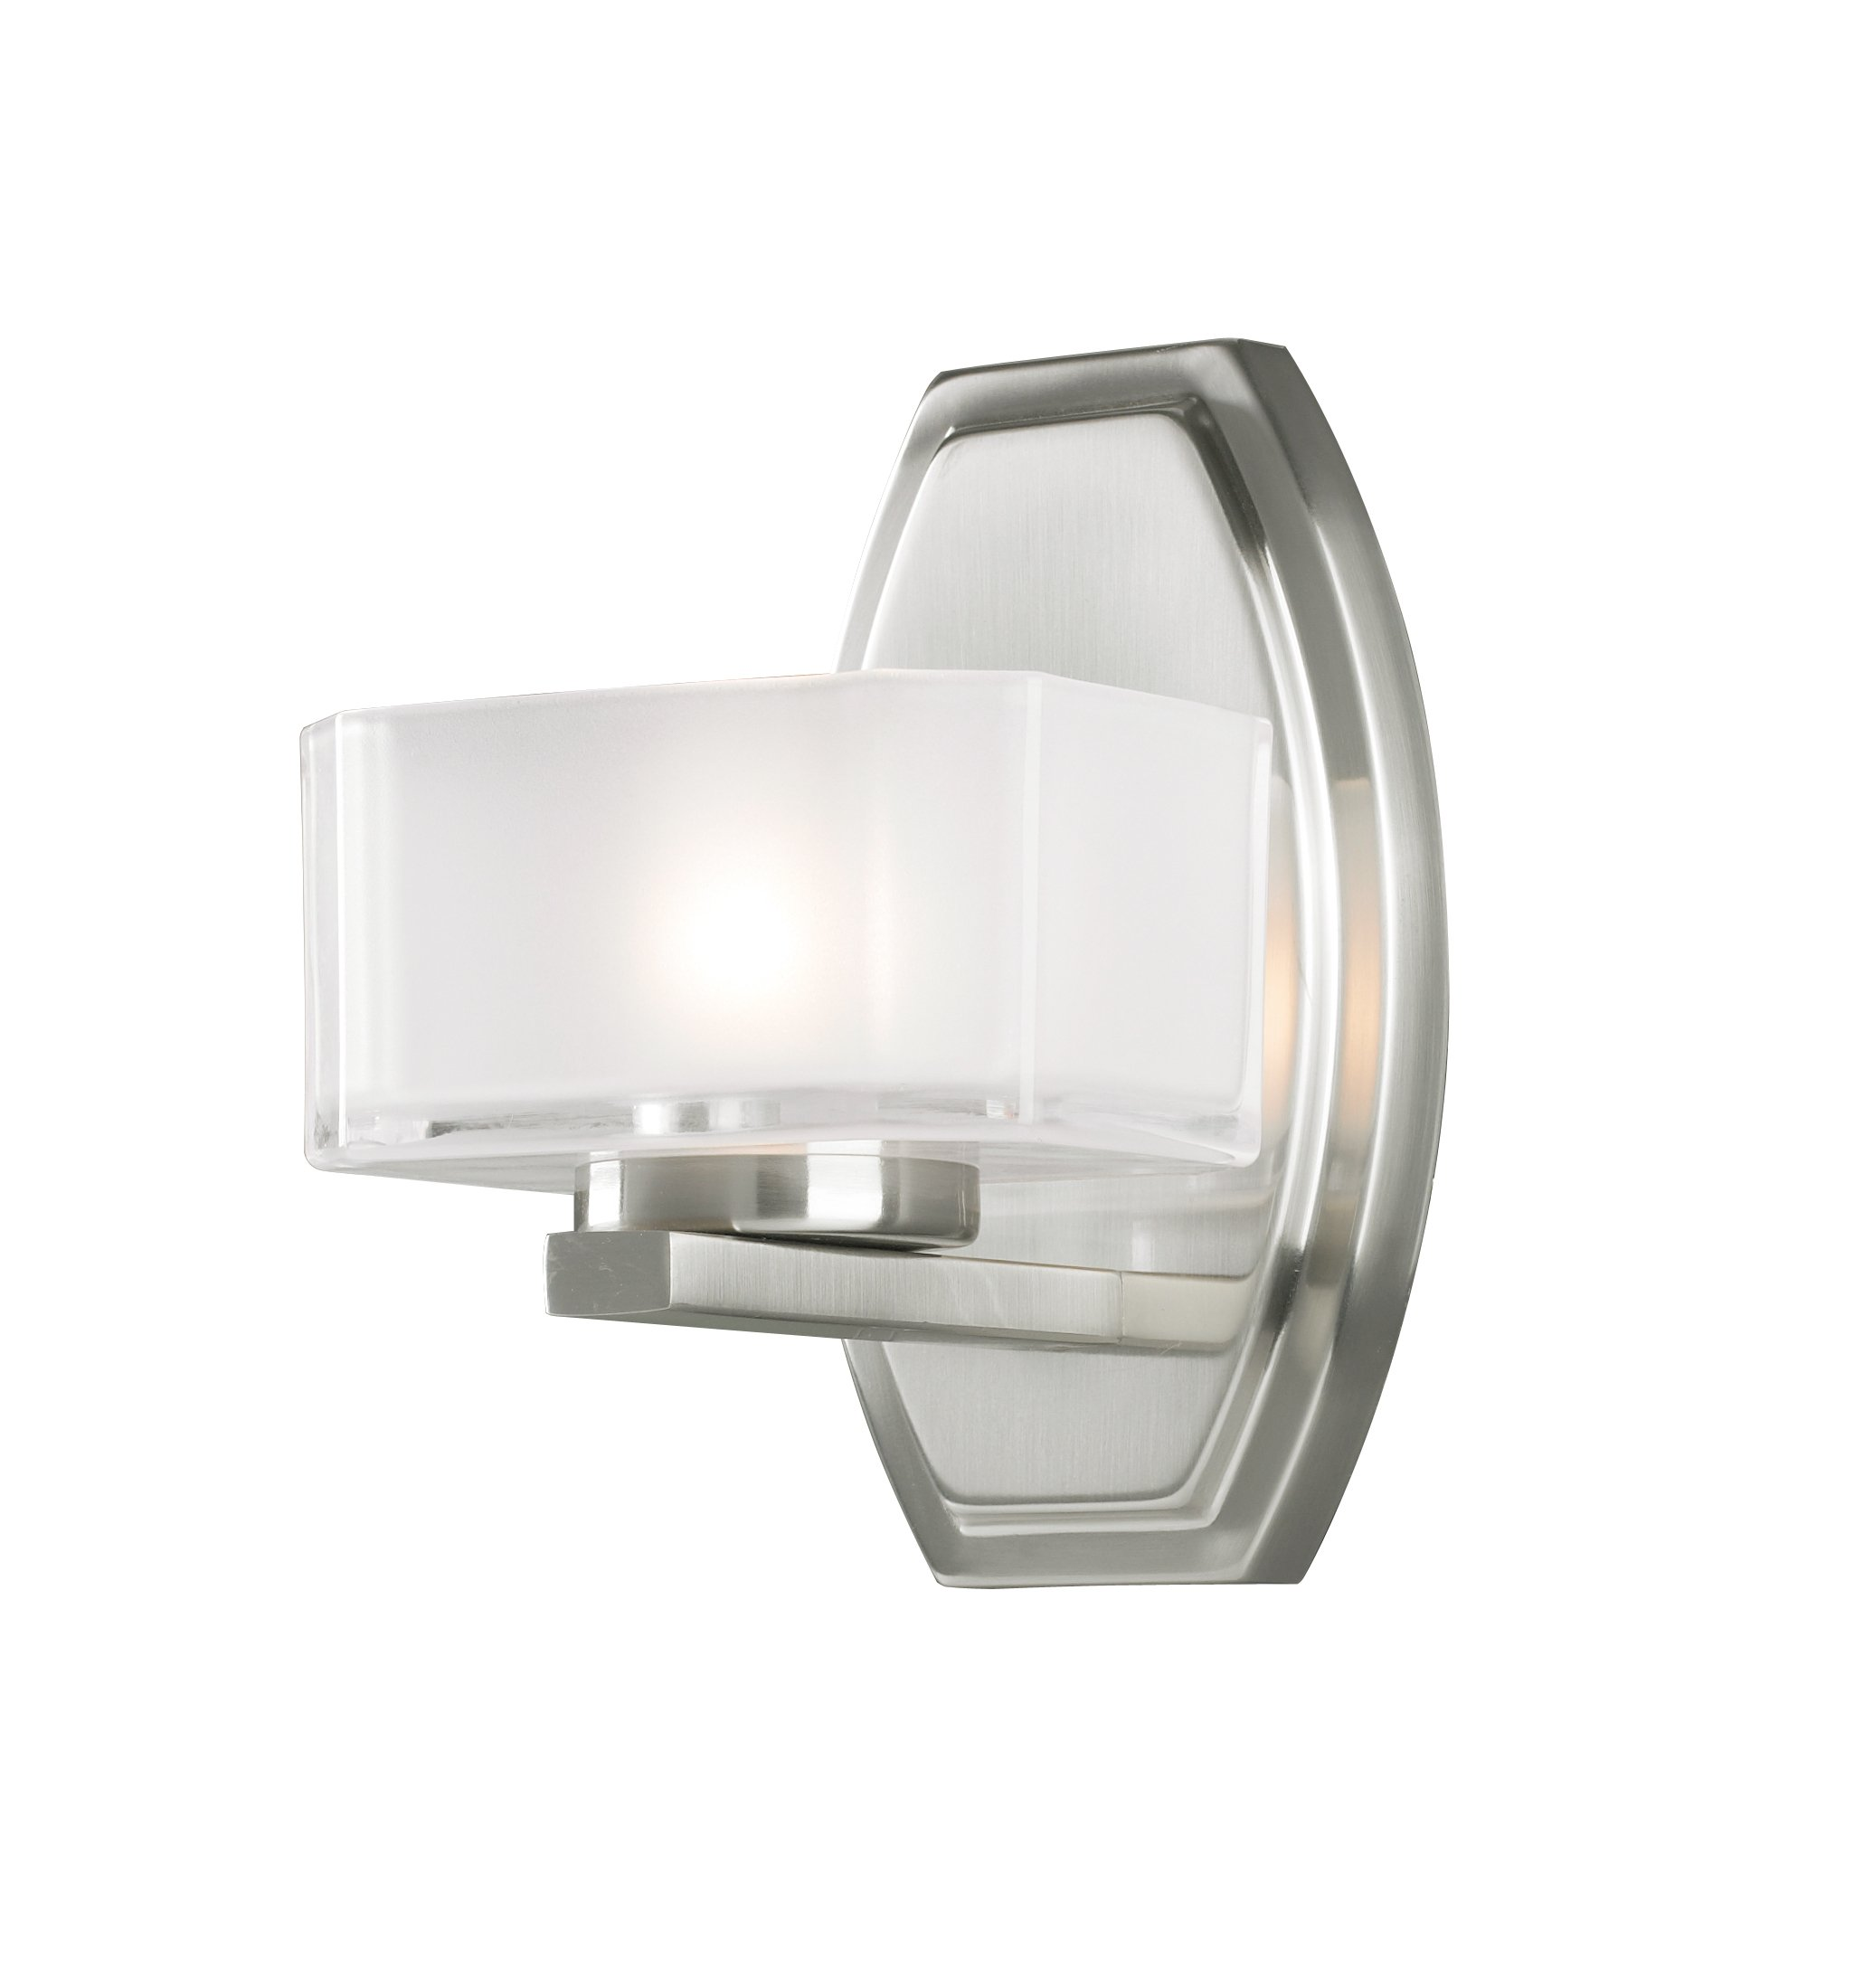 Z-Lite 3007-1V Cabro 1 Light Vanity Light, Steel Frame, Brushed Nickel Finish and Frosted White Inside and Clear Outside Glass Shade of Glass Material